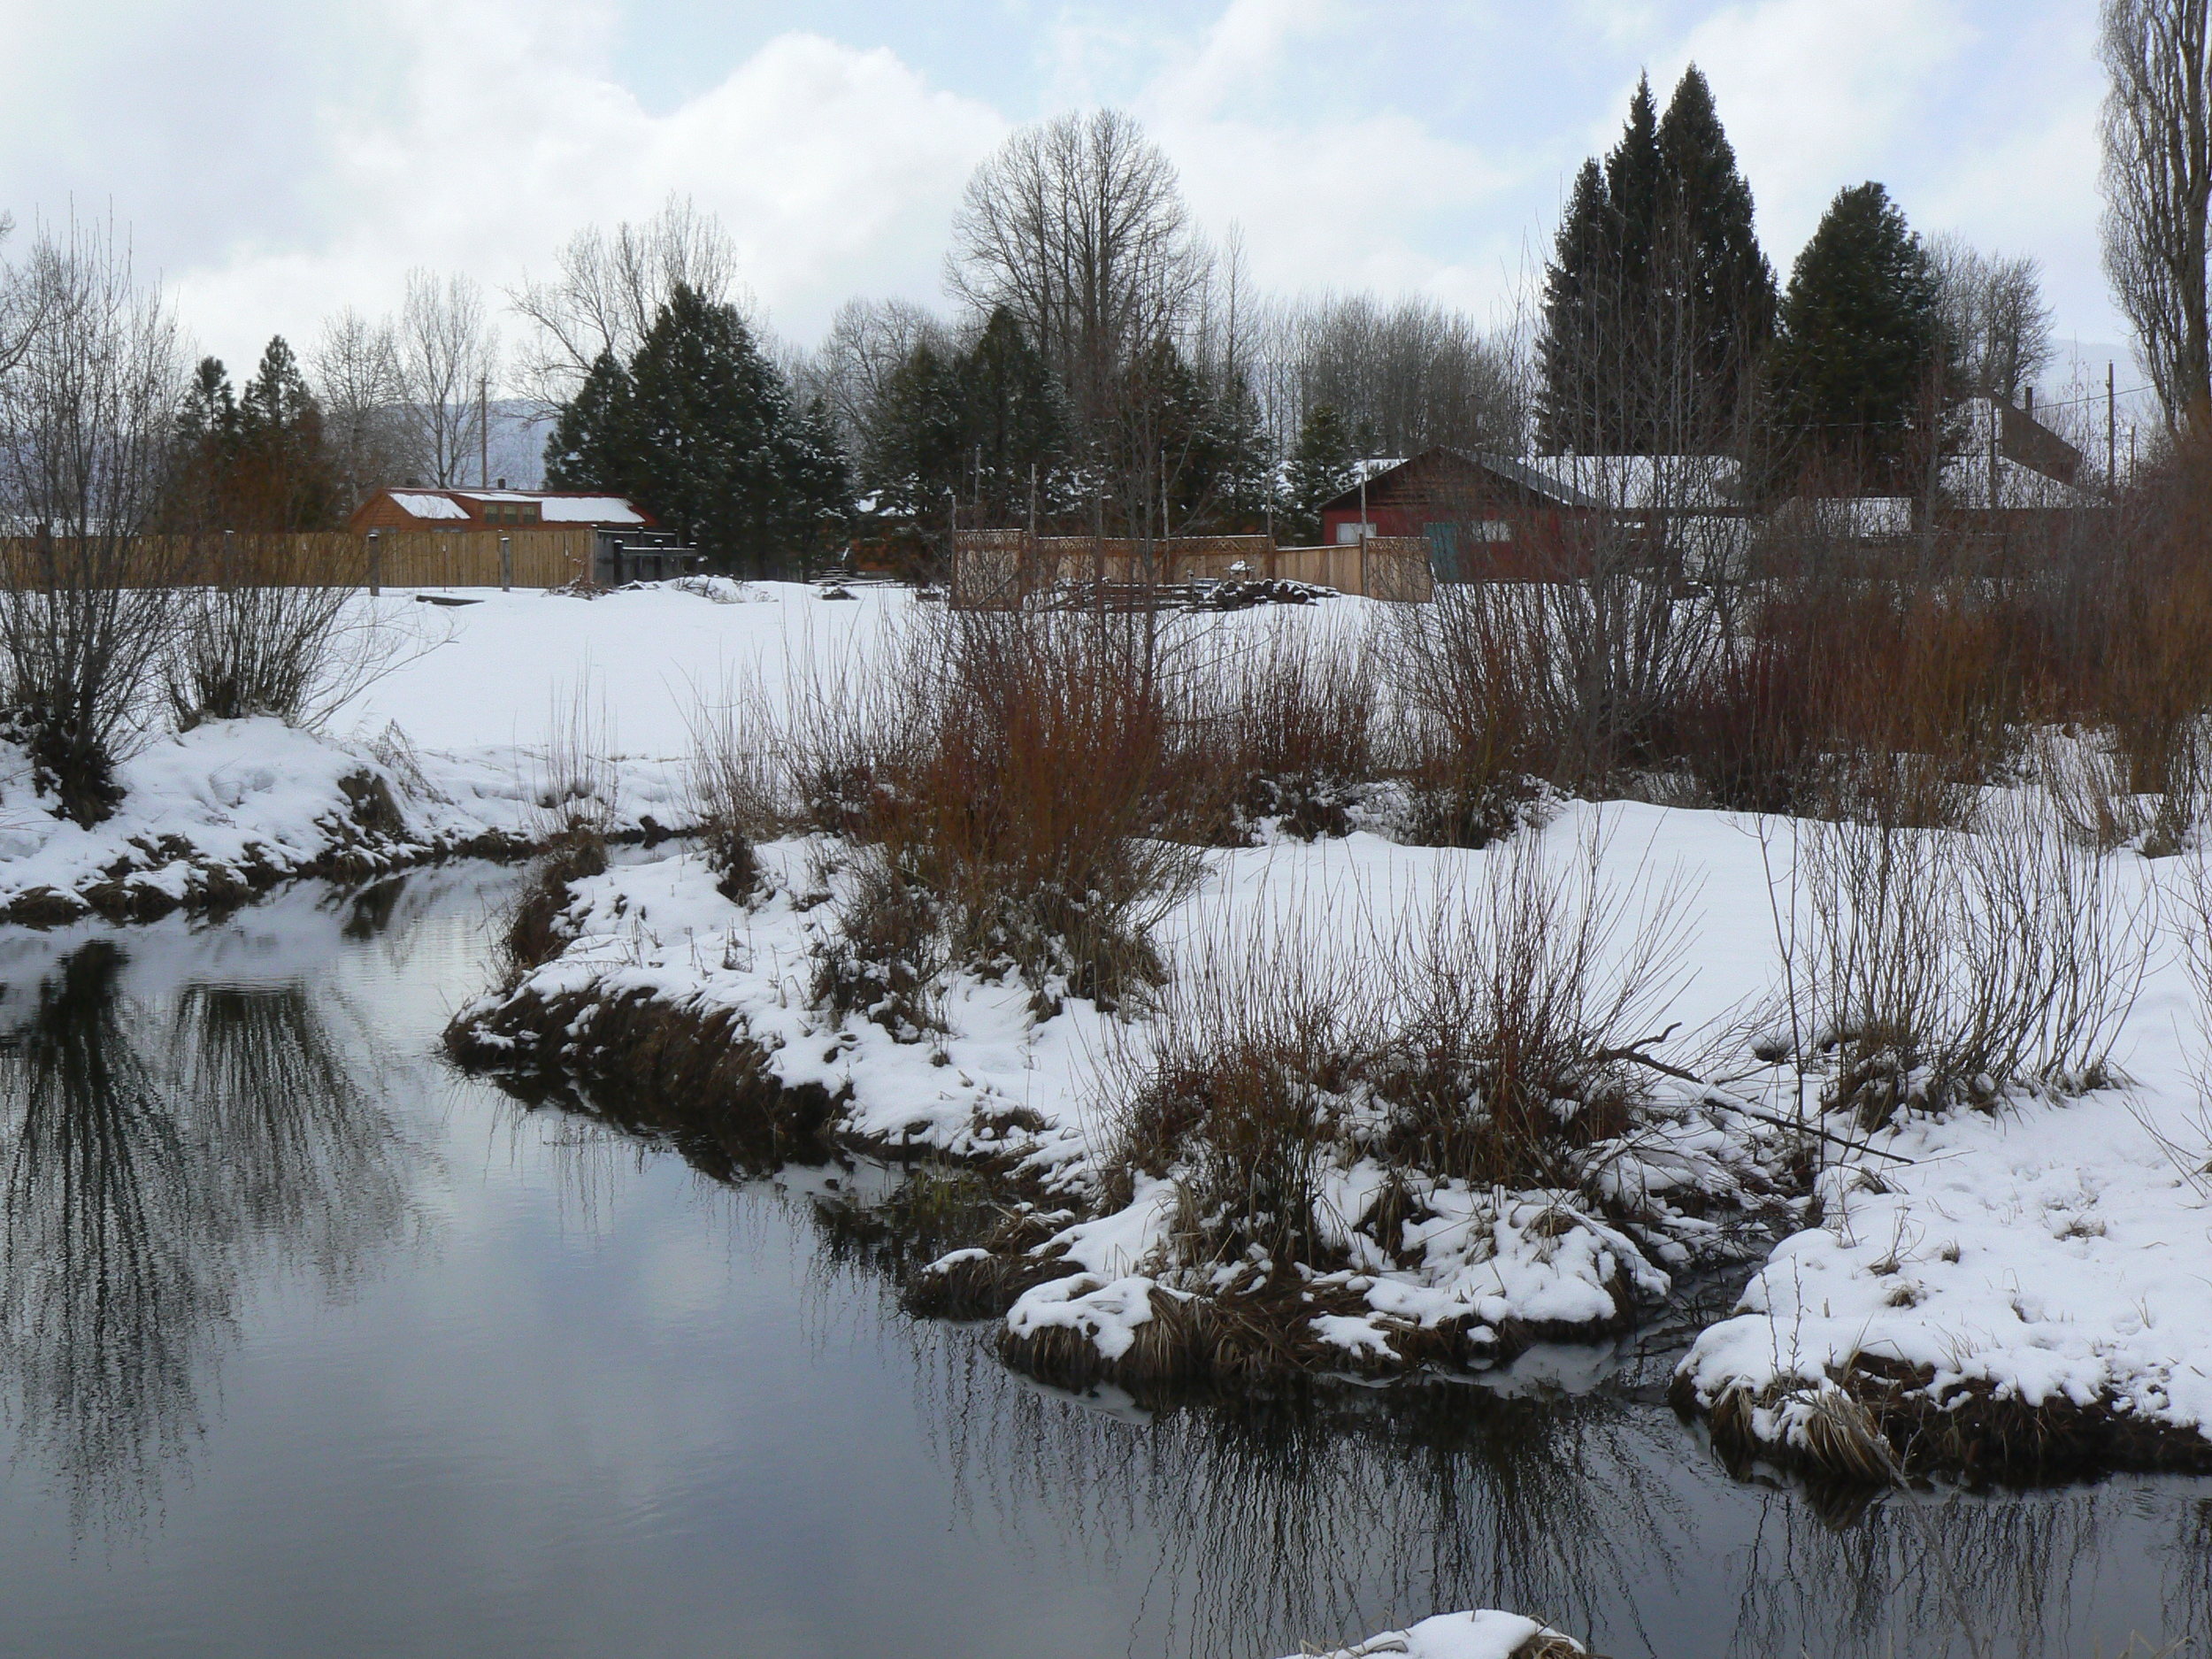 Wood River - Old Main Channel